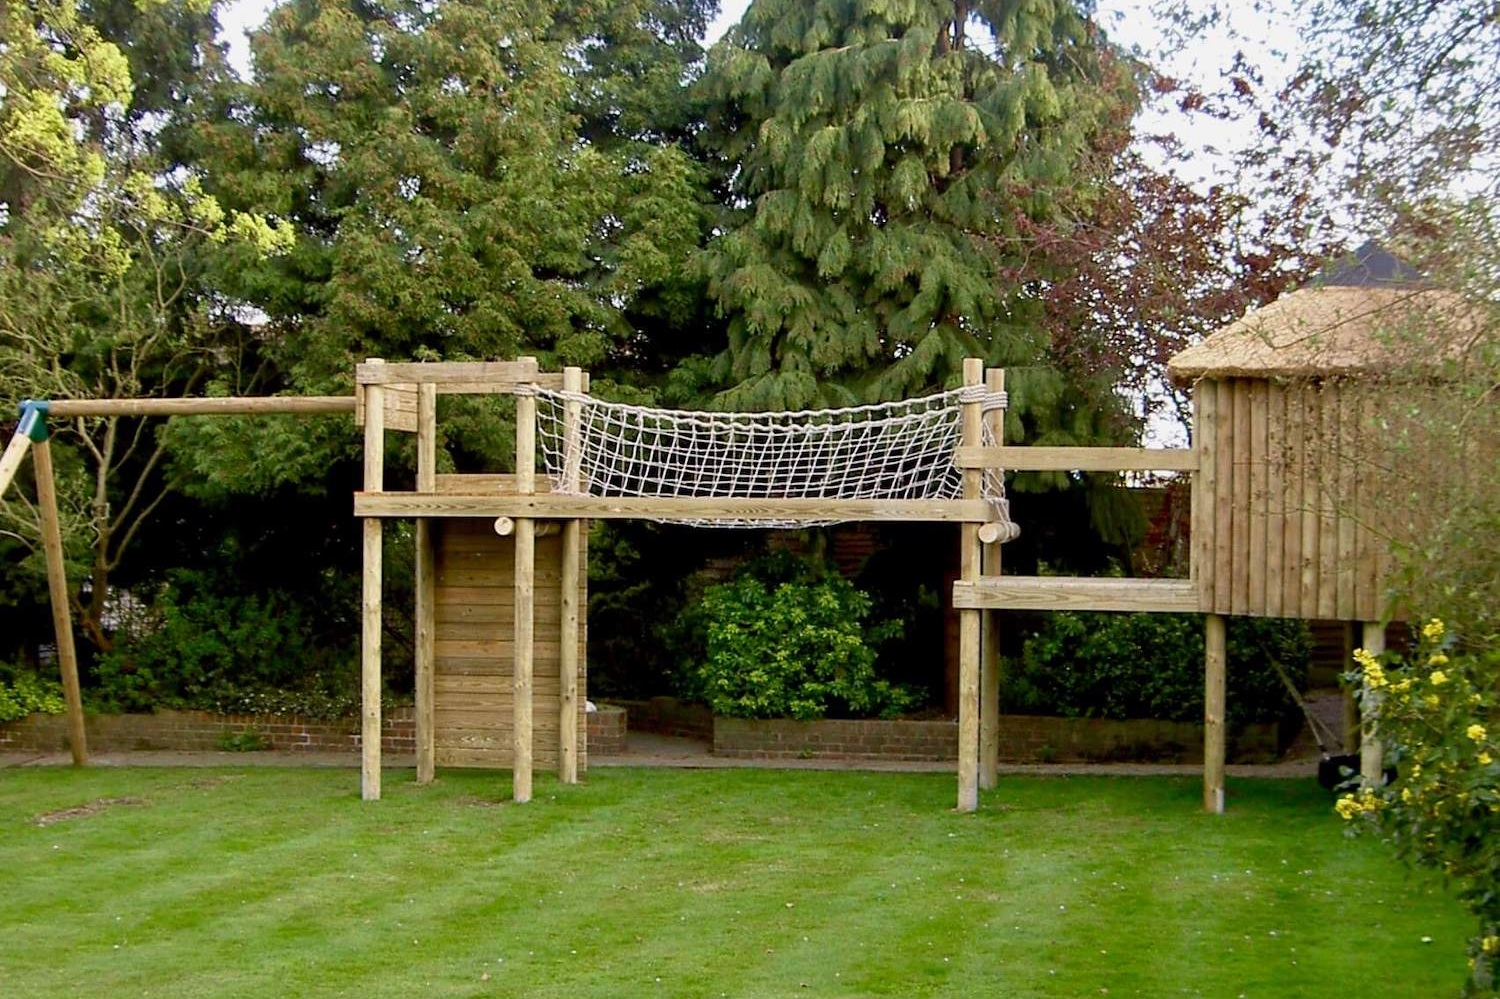 small-garden-treehouse-and-playset.jpg